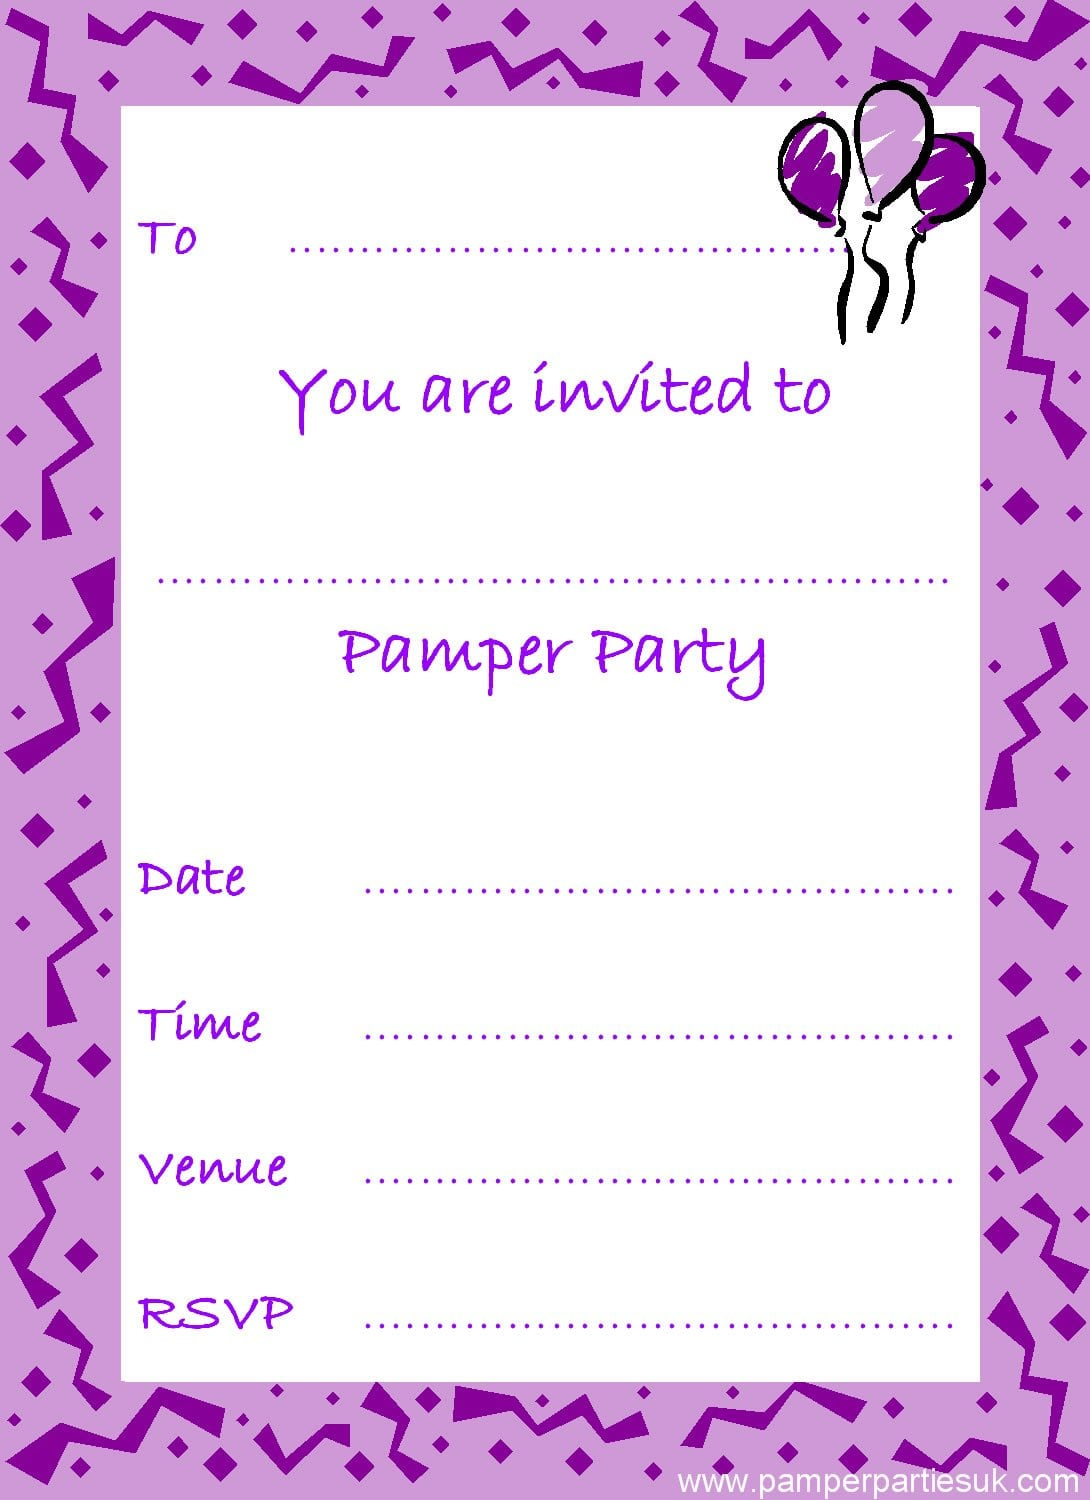 free printable party invitations templatesFree Printable Pamper Party Invitations HhmSTDgf